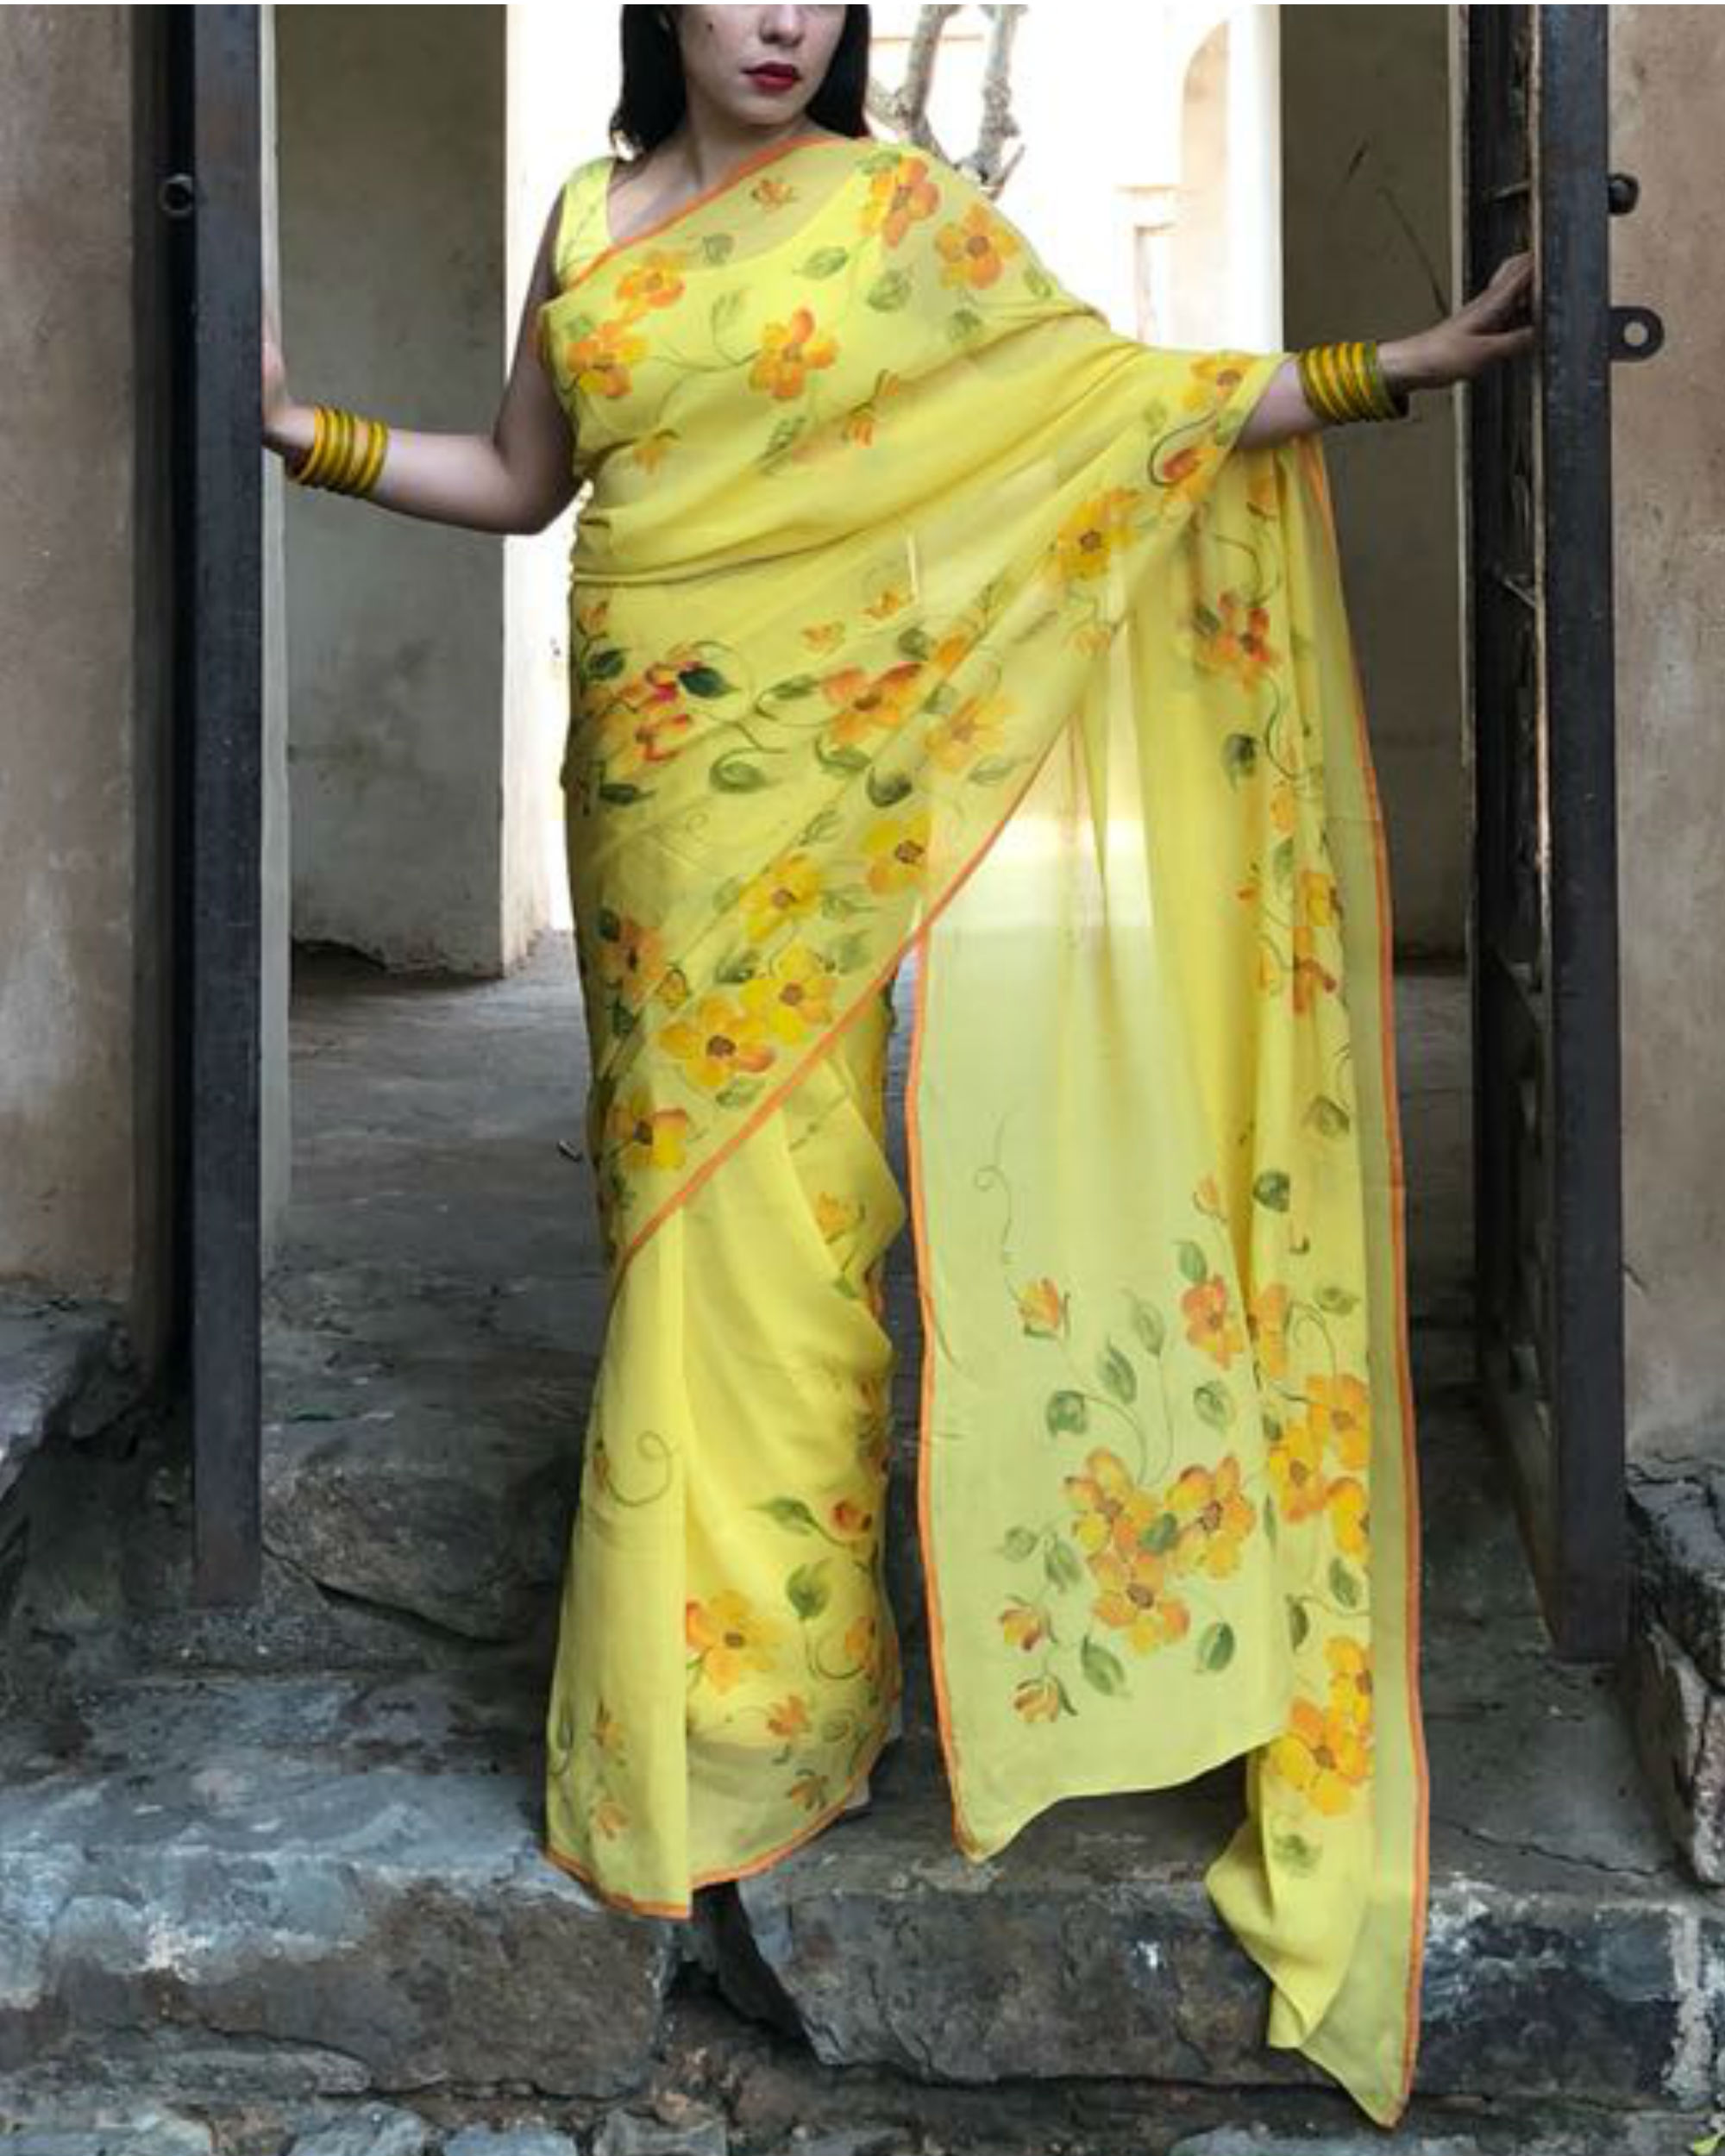 Sunshine yellow sari